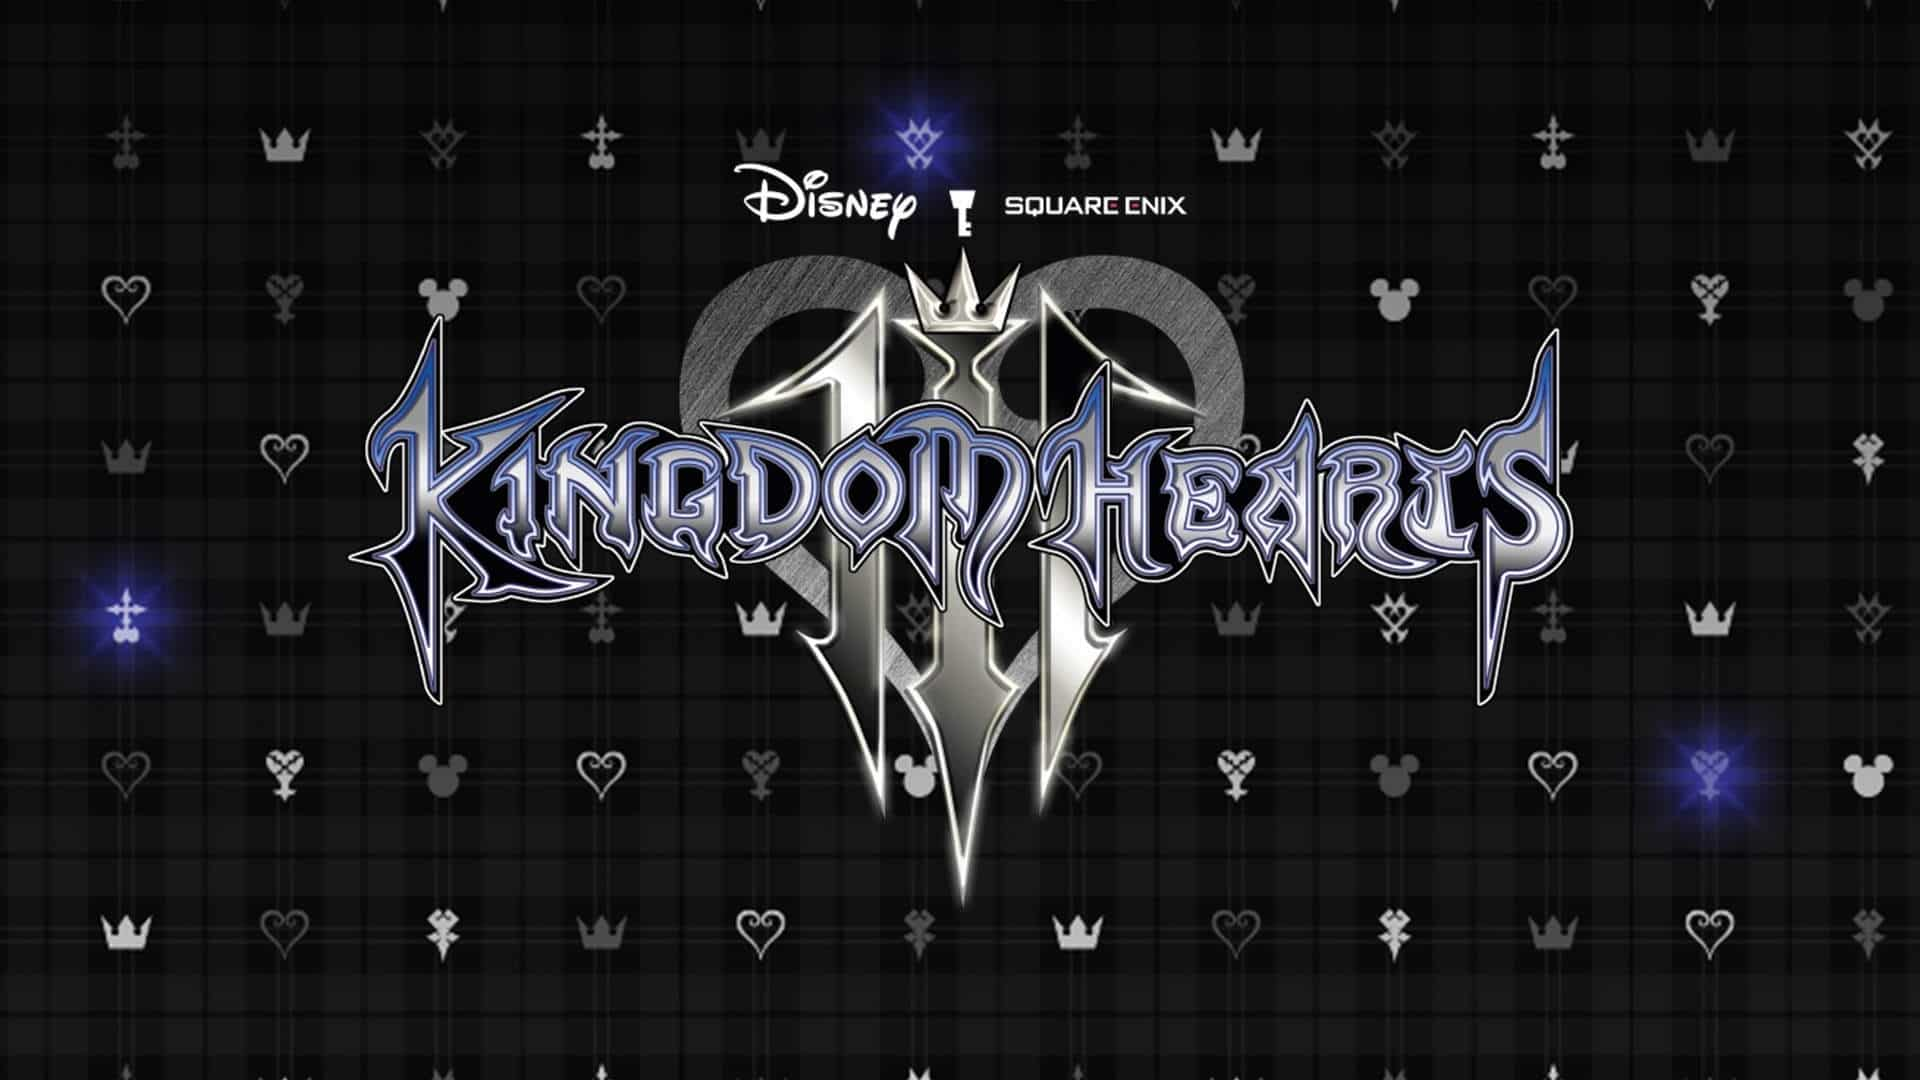 Highly Anticipated Critical Mode Now Available In Kingdom Hearts III